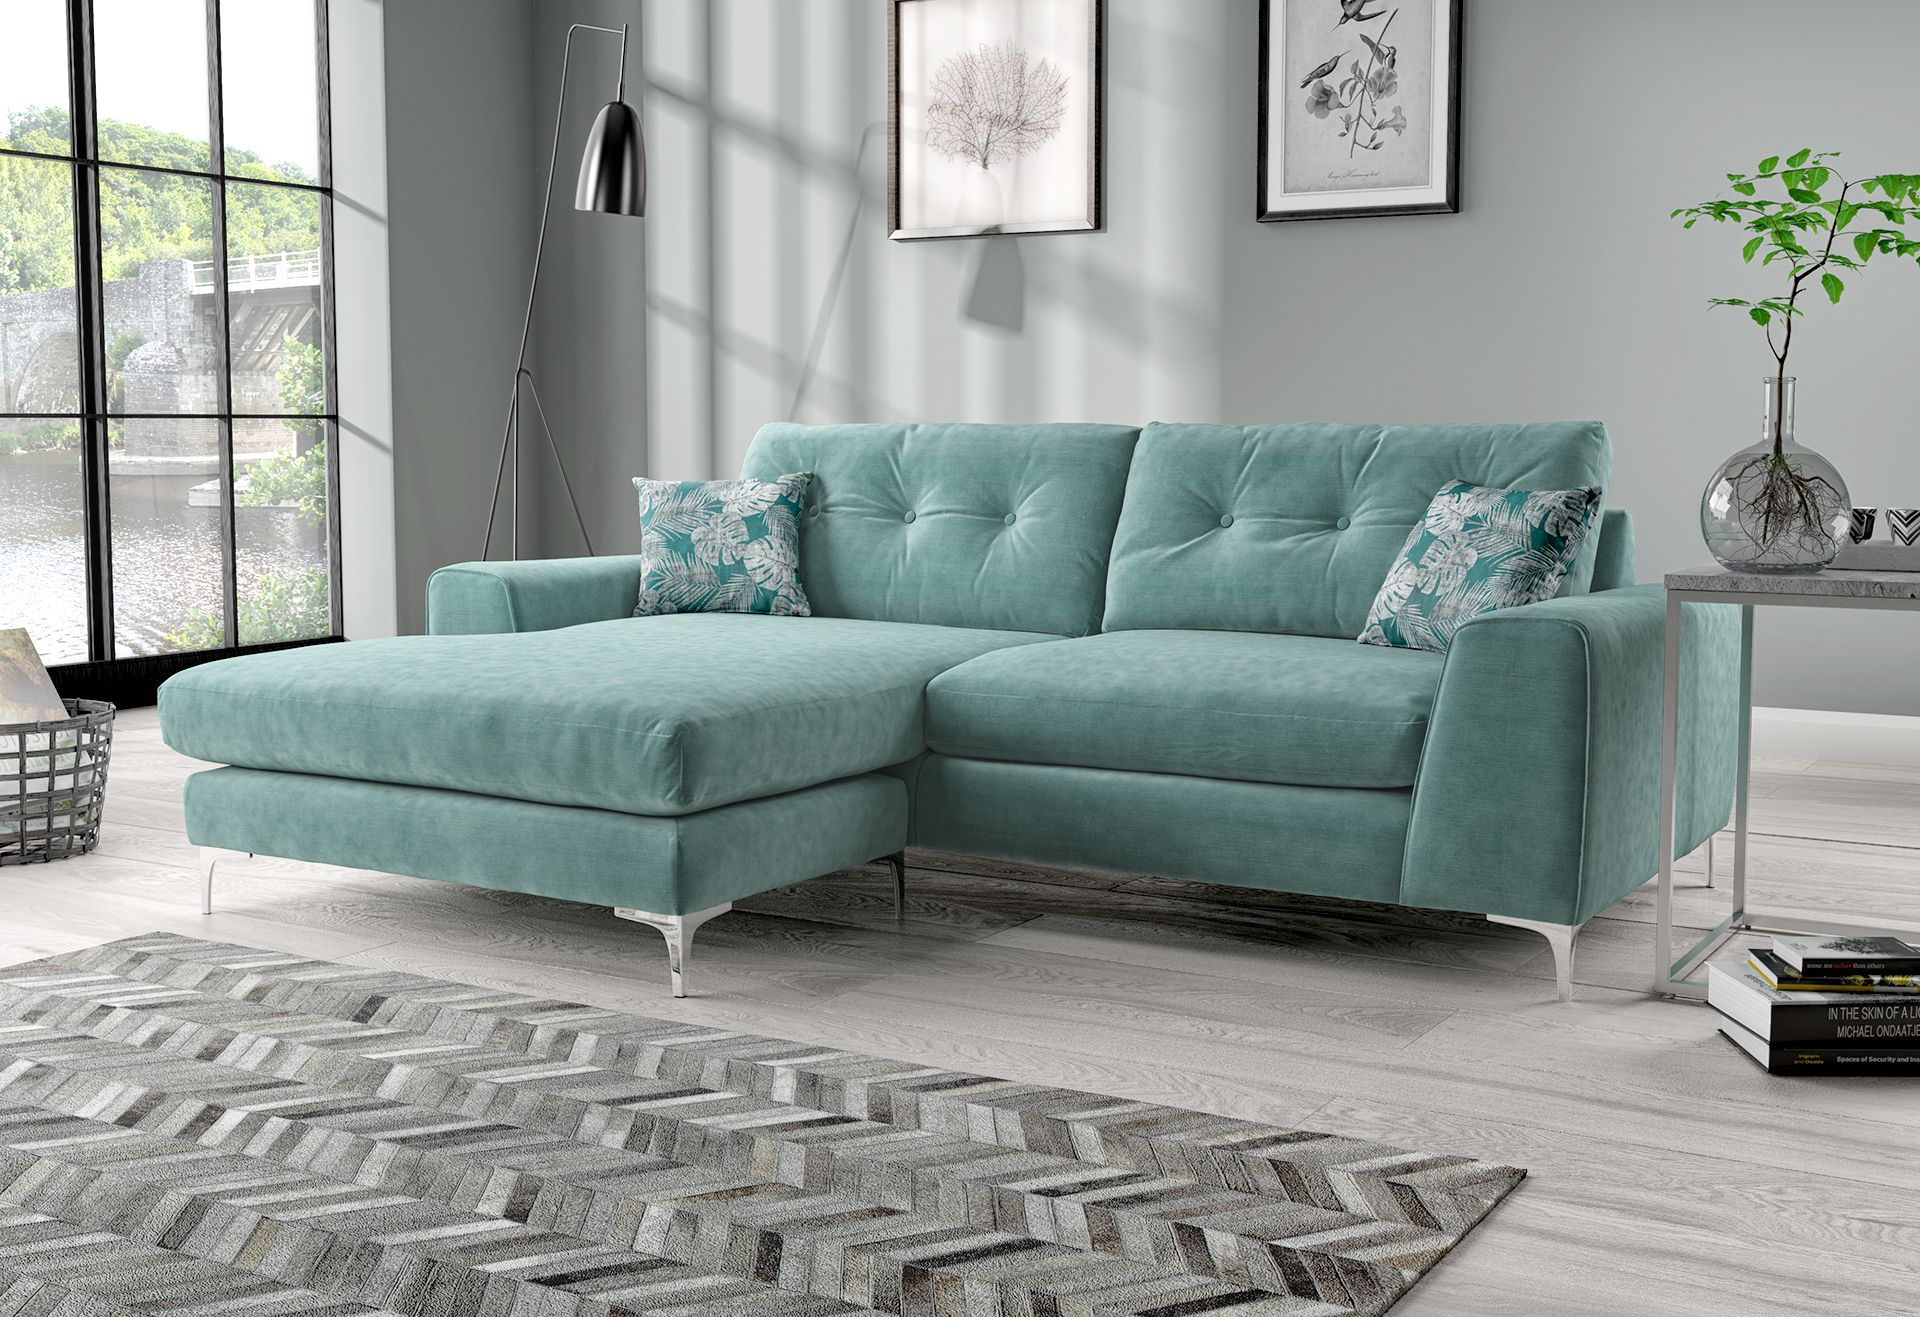 Sofology Sofas Dorchester Pin By Sharon Schembri On Modern Lounge In 2019 Sofa Couch